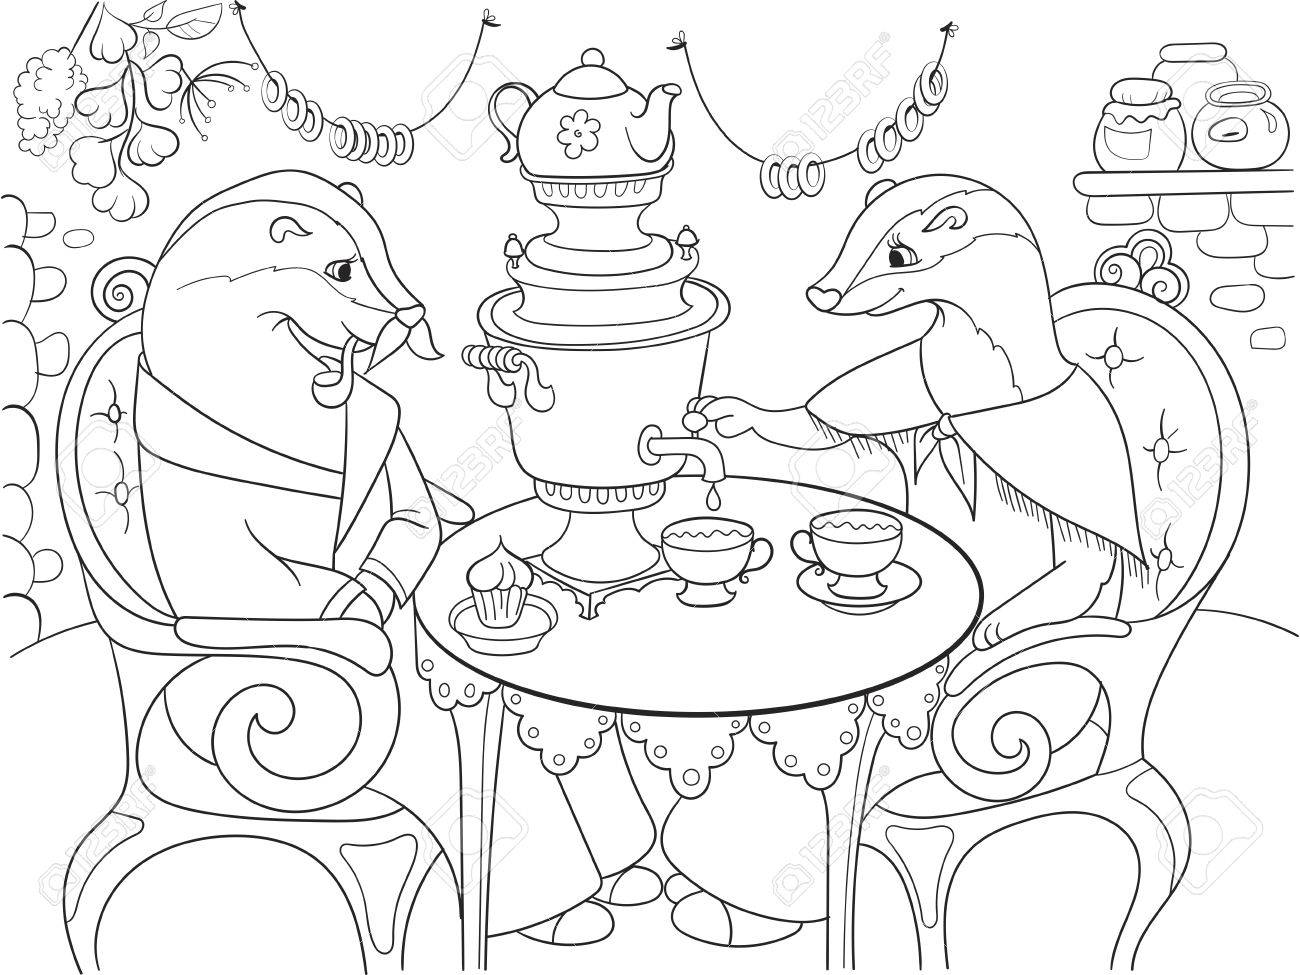 1300x975 Family Of Badgers In Their House In The Kitchen Coloring Book